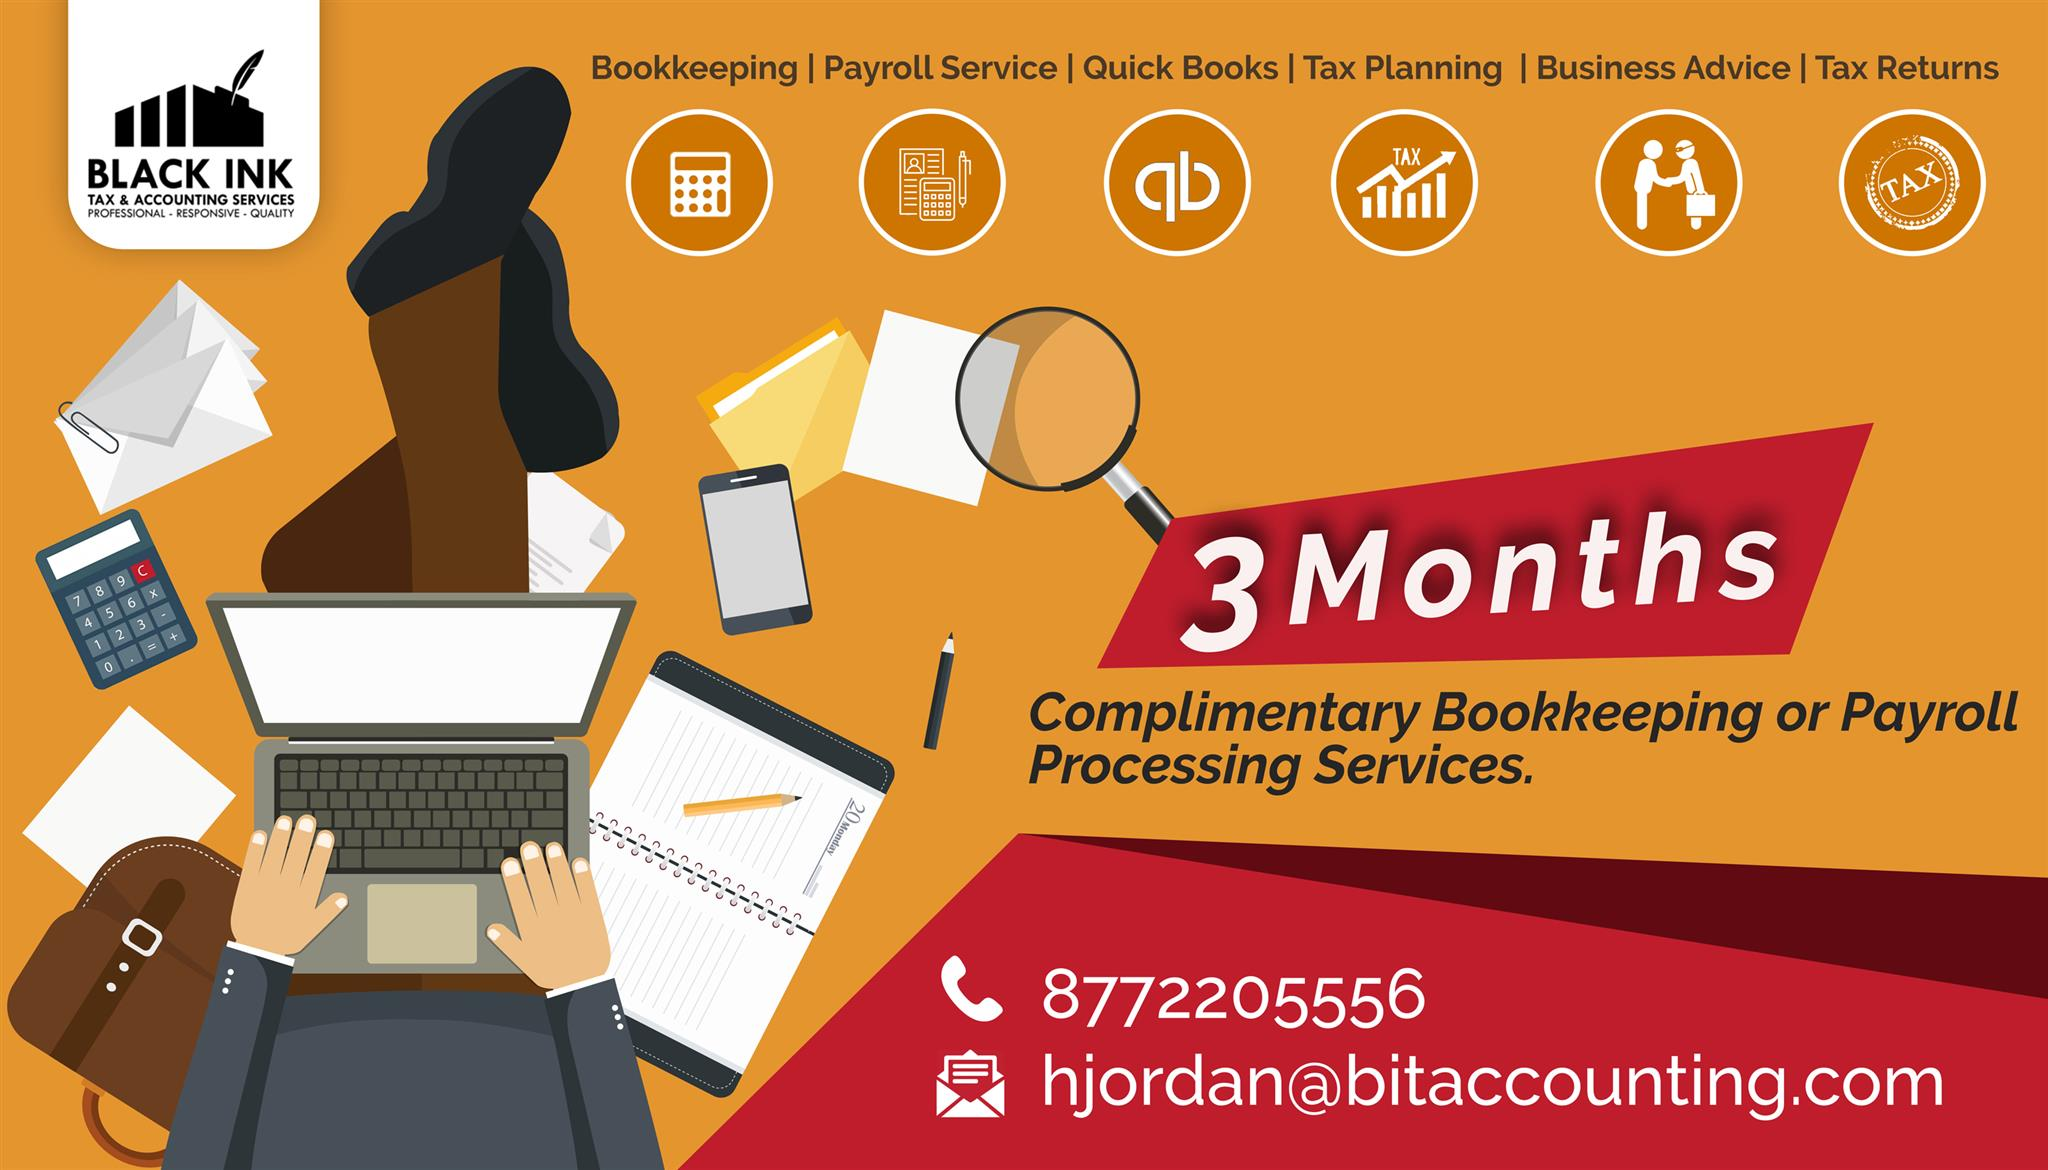 THREE-MONTHS FREE PAYROLL AND BOOKKEEPING SERVICES